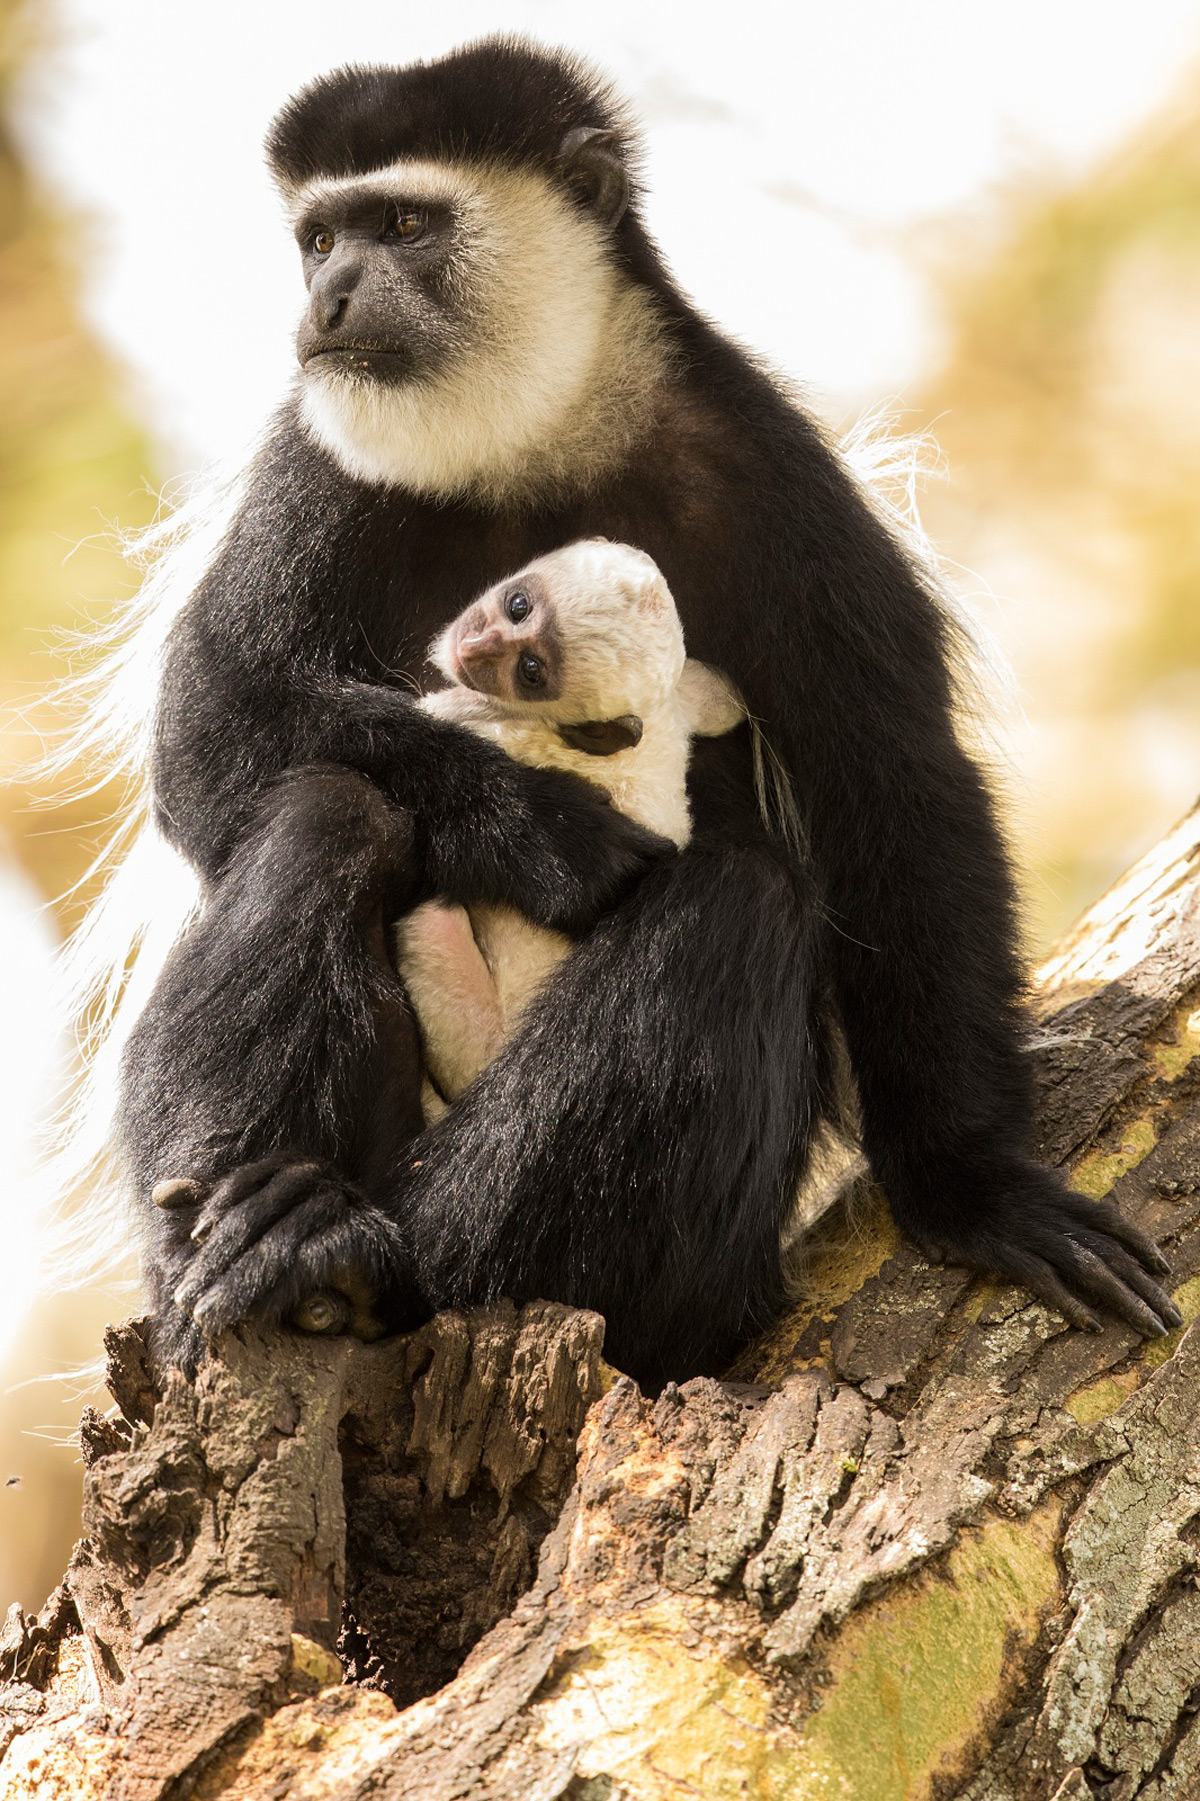 A black-and-white colobus monkey with its young (who are born white) in Naivasha, Nairobi © Faraaz Abdool